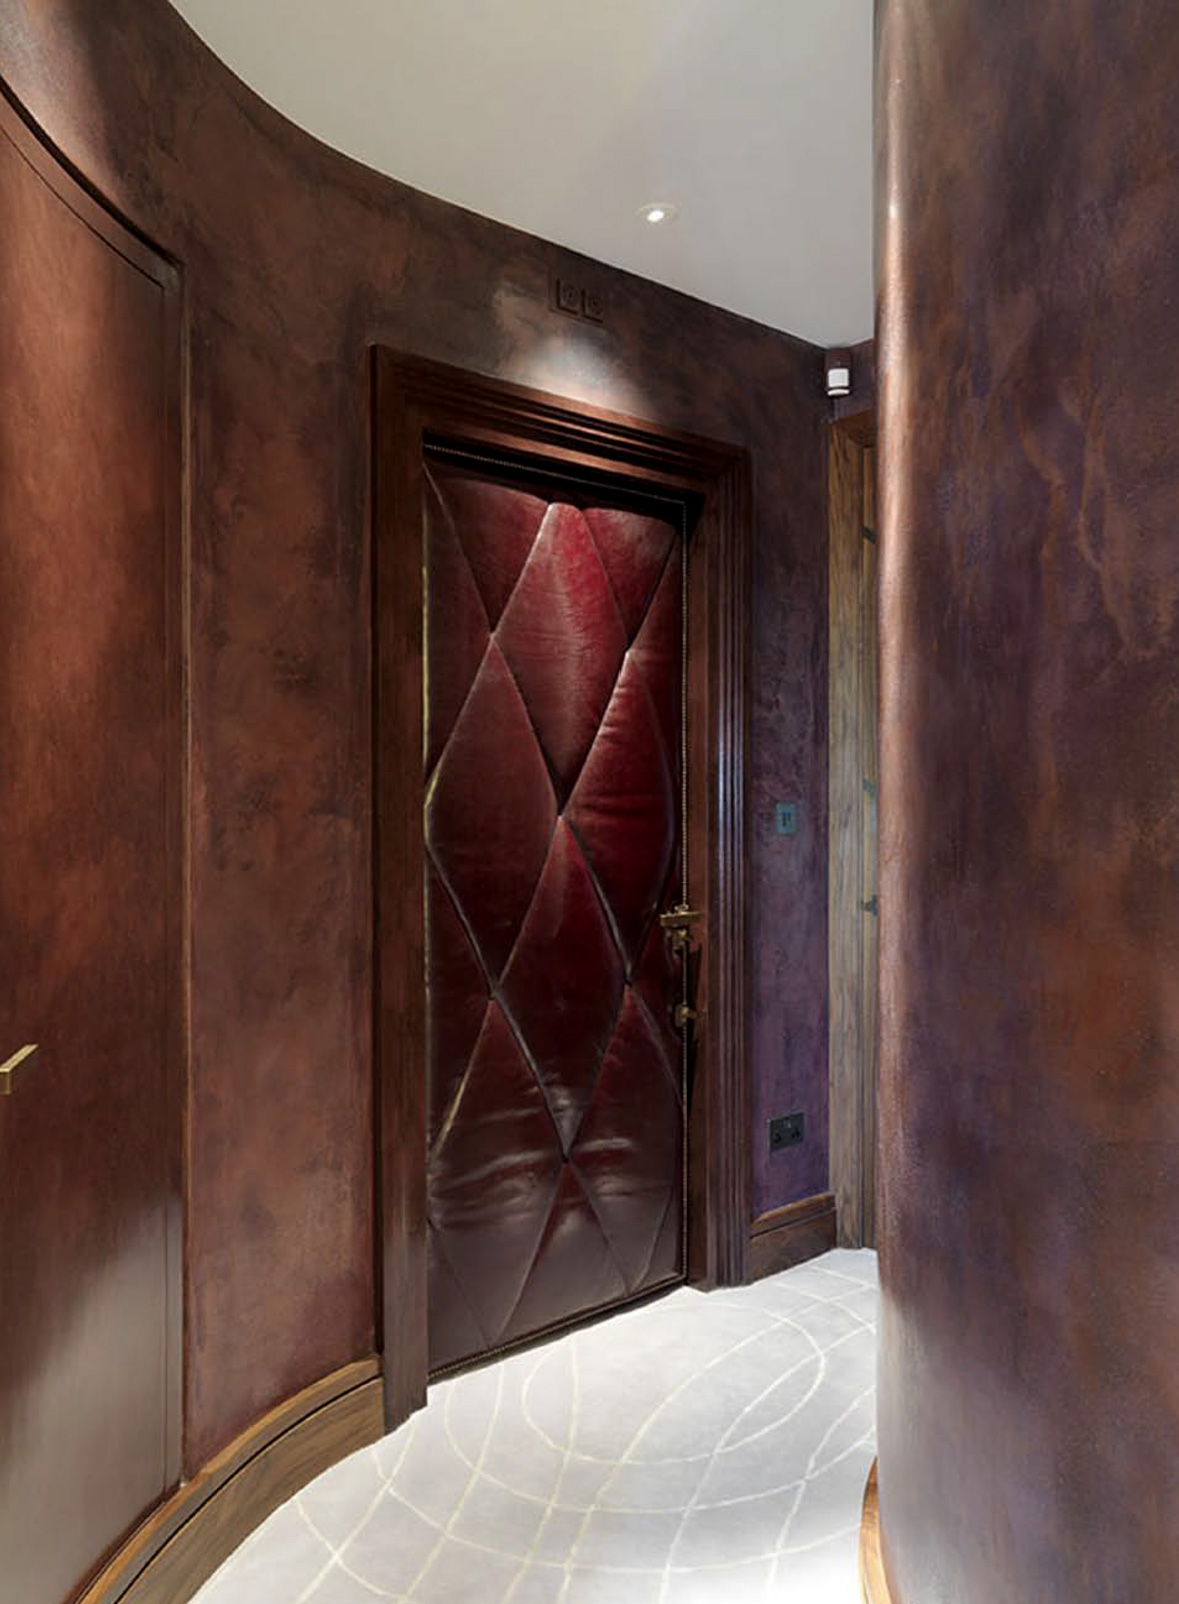 The hallway and a door, clad with leather.